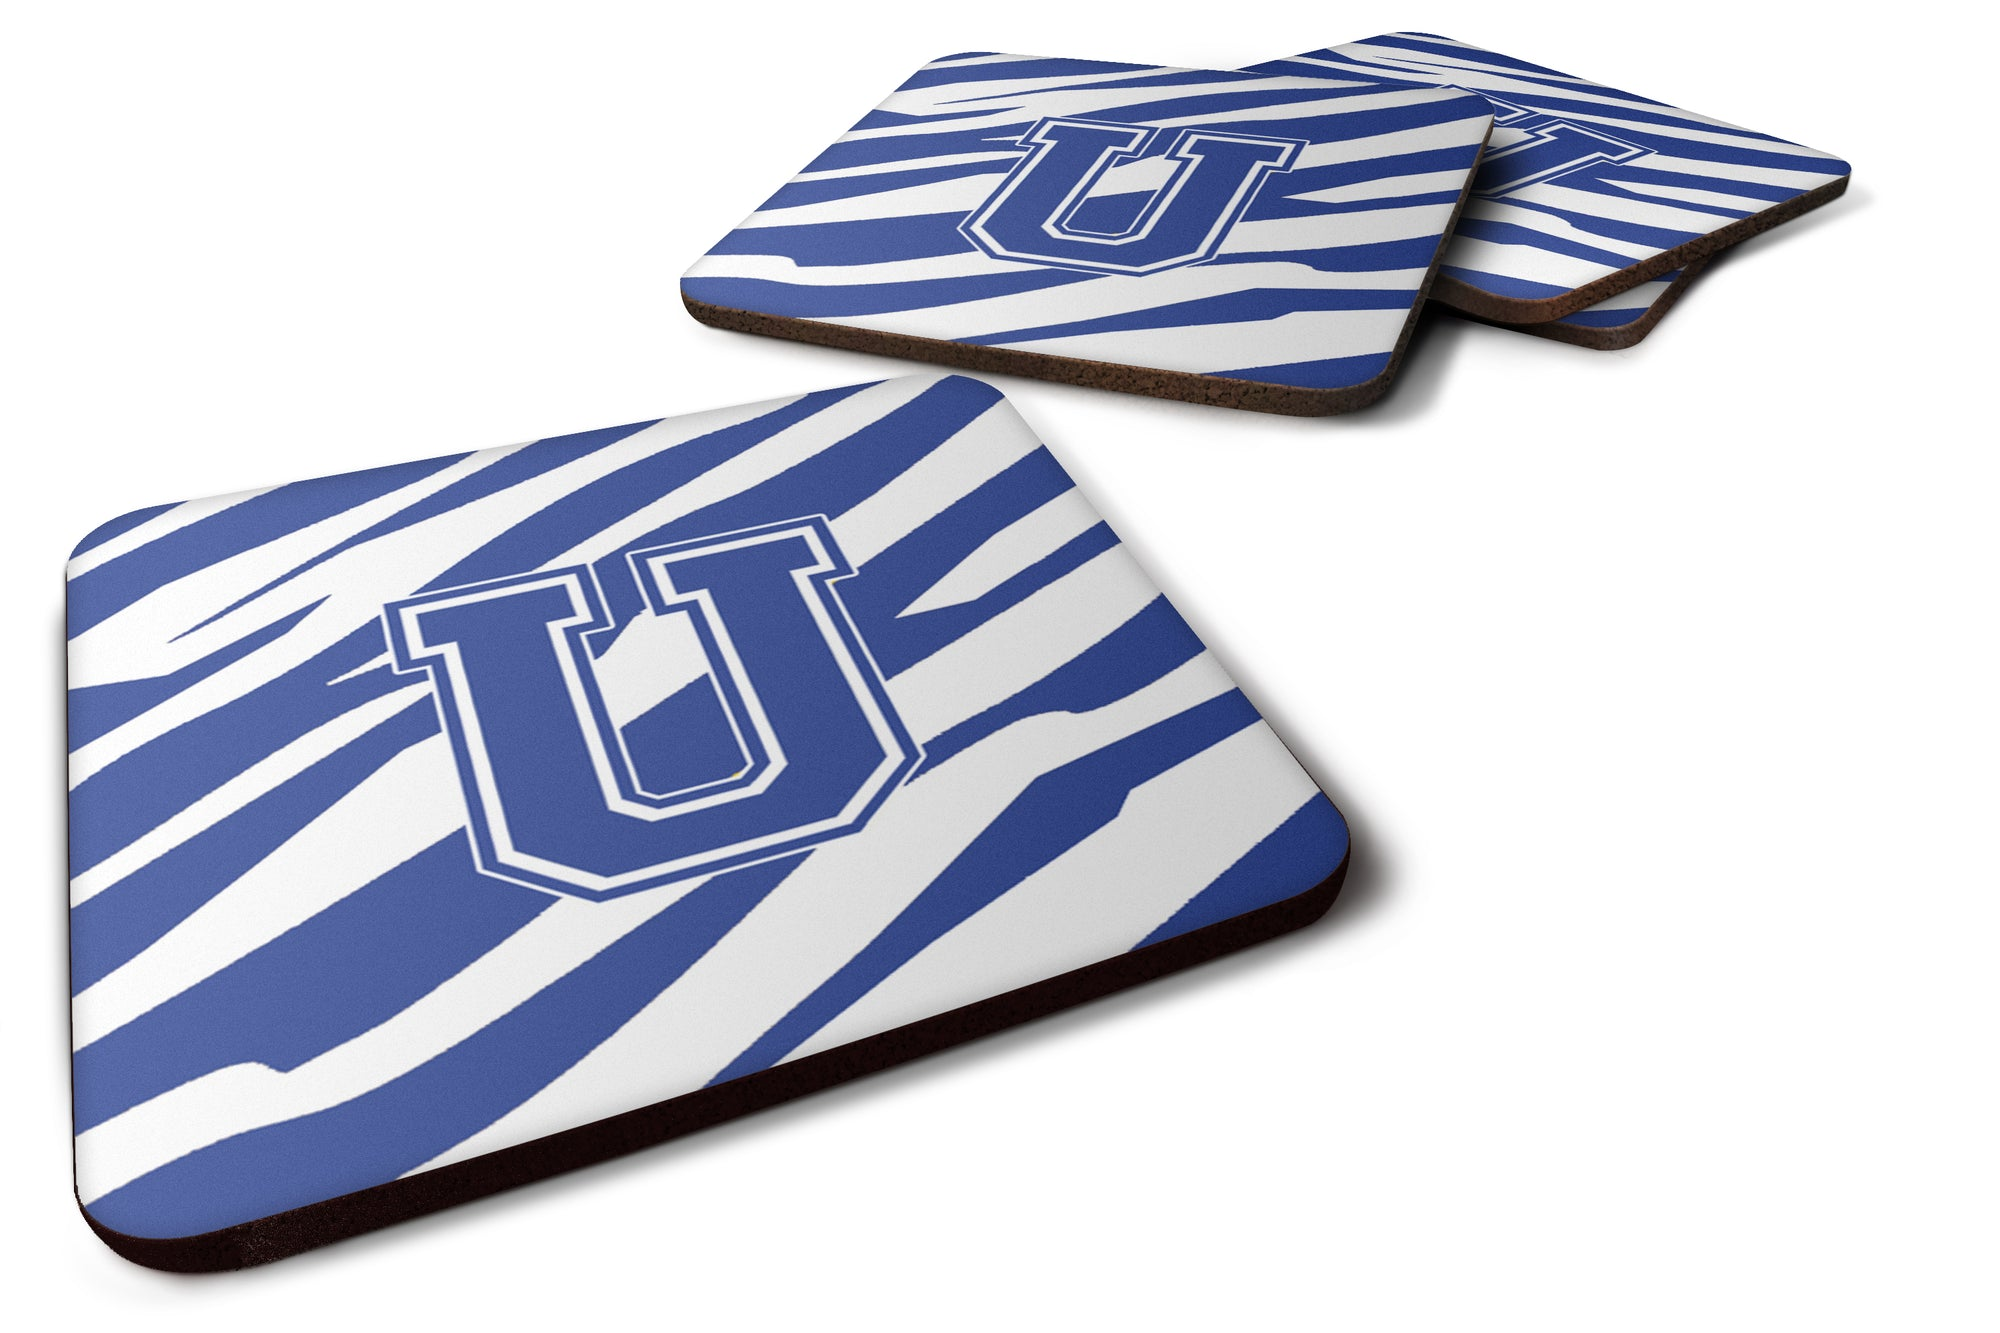 Buy this Set of 4 Monogram - Tiger Stripe Blue and White Foam Coasters Initial Letter U